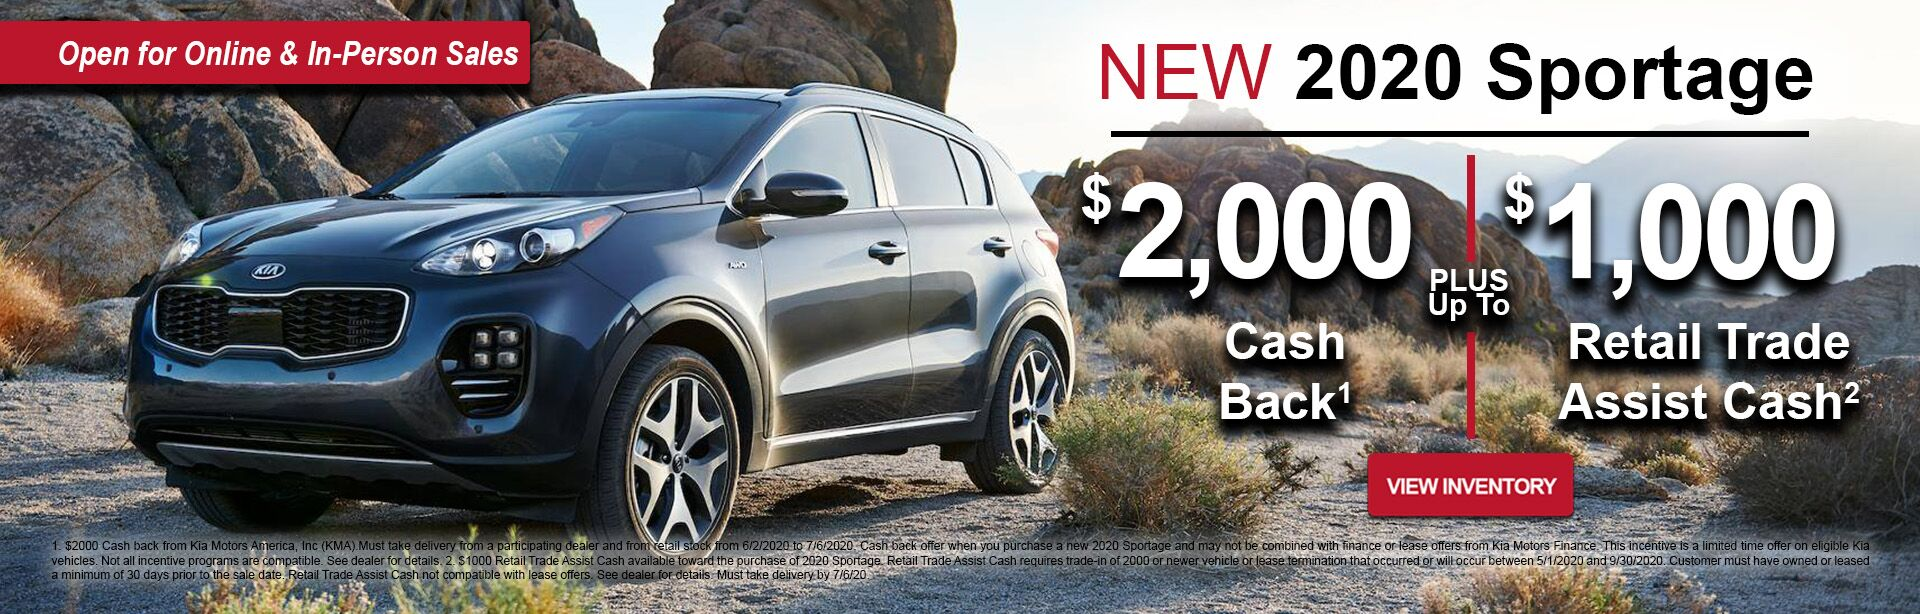 June Sportage Retail Offer